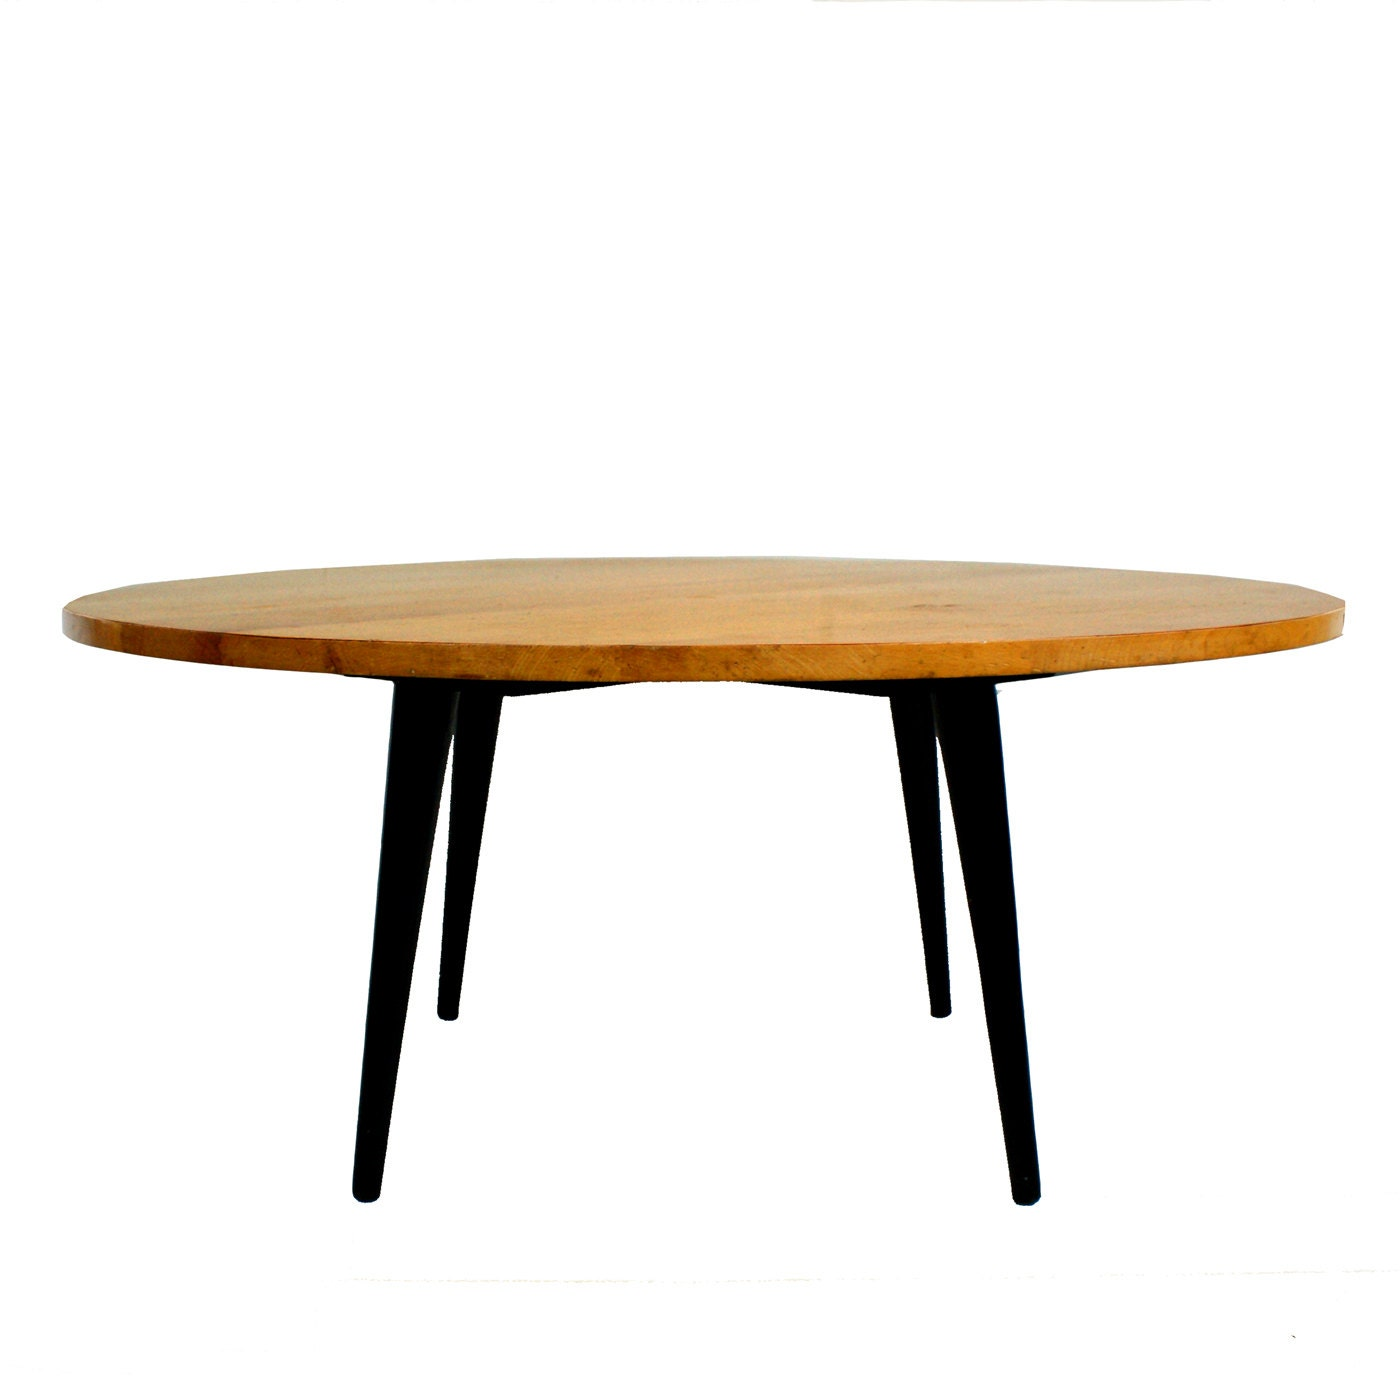 Round Table With Screw On Legs Pictures to Pin on Pinterest - PinsDaddy